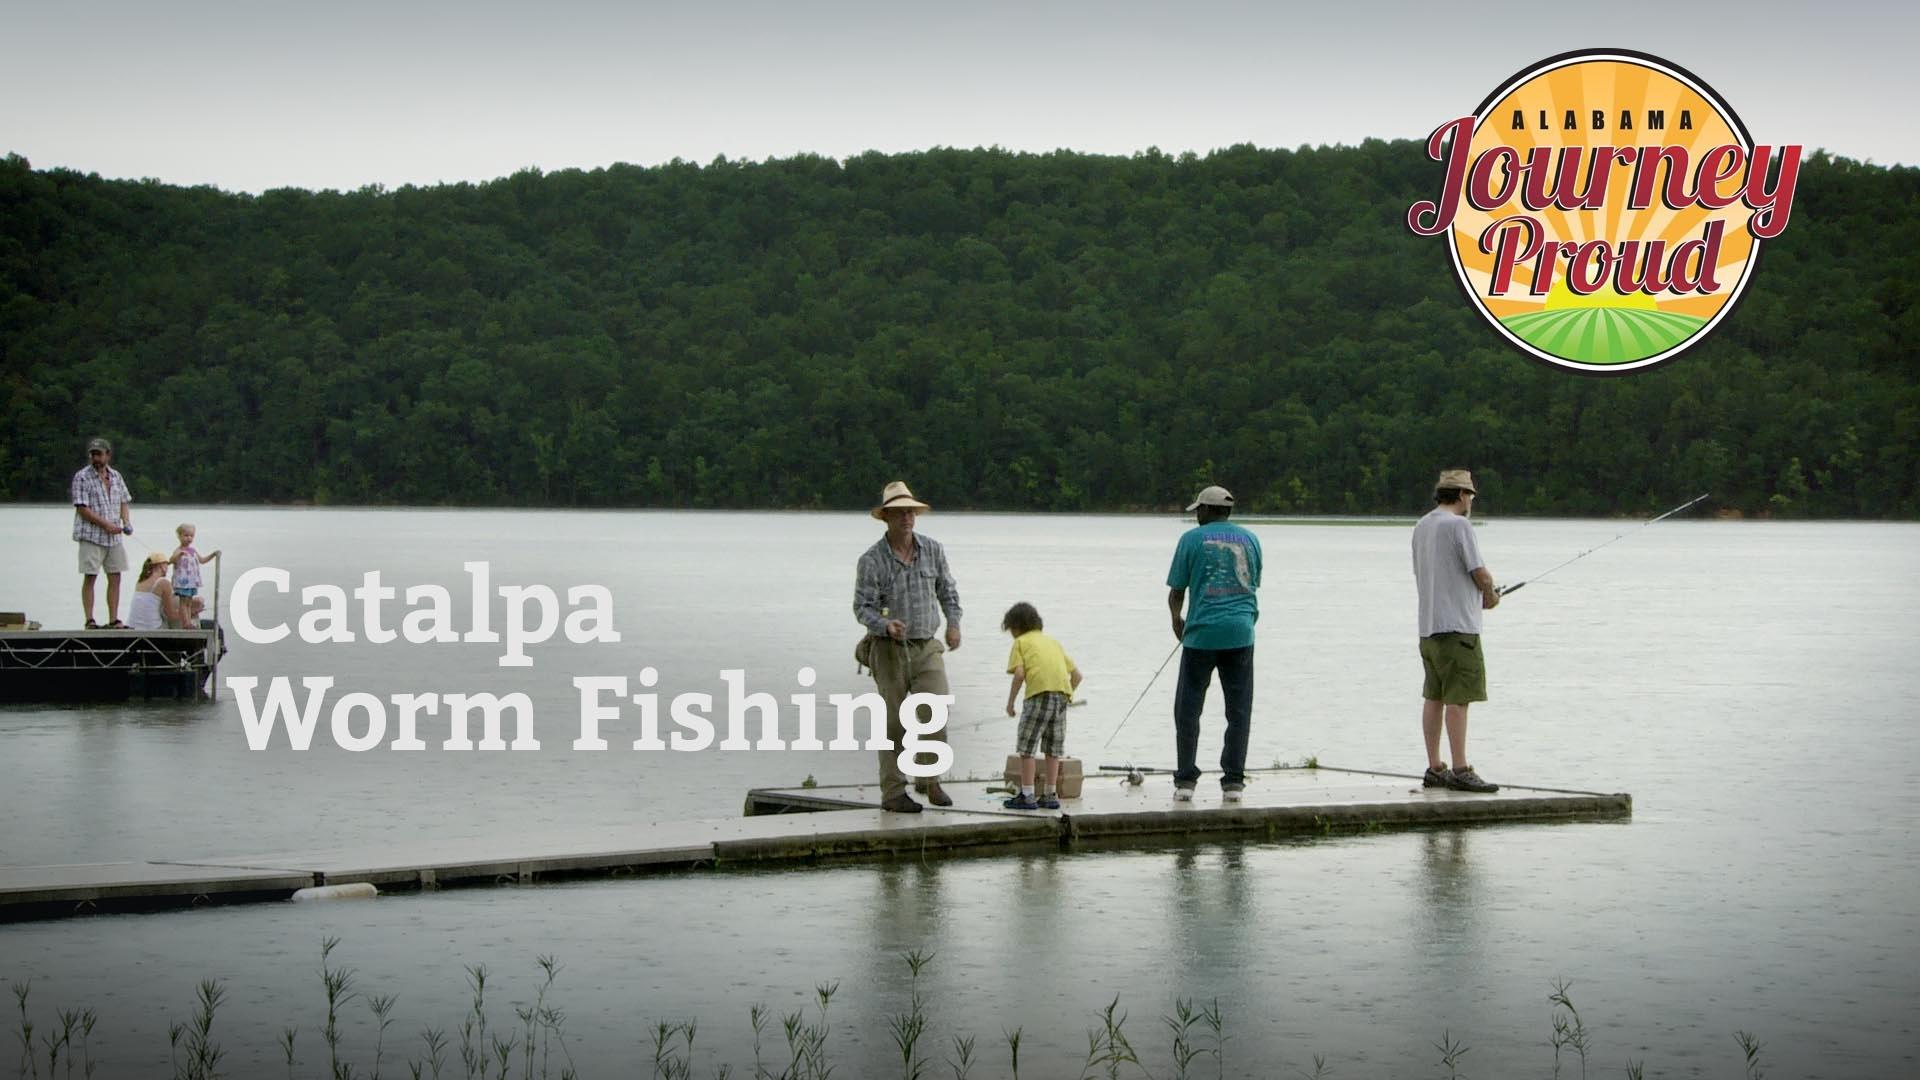 Video catalpa worm fishing watch journey proud online for Catalpa worms fishing